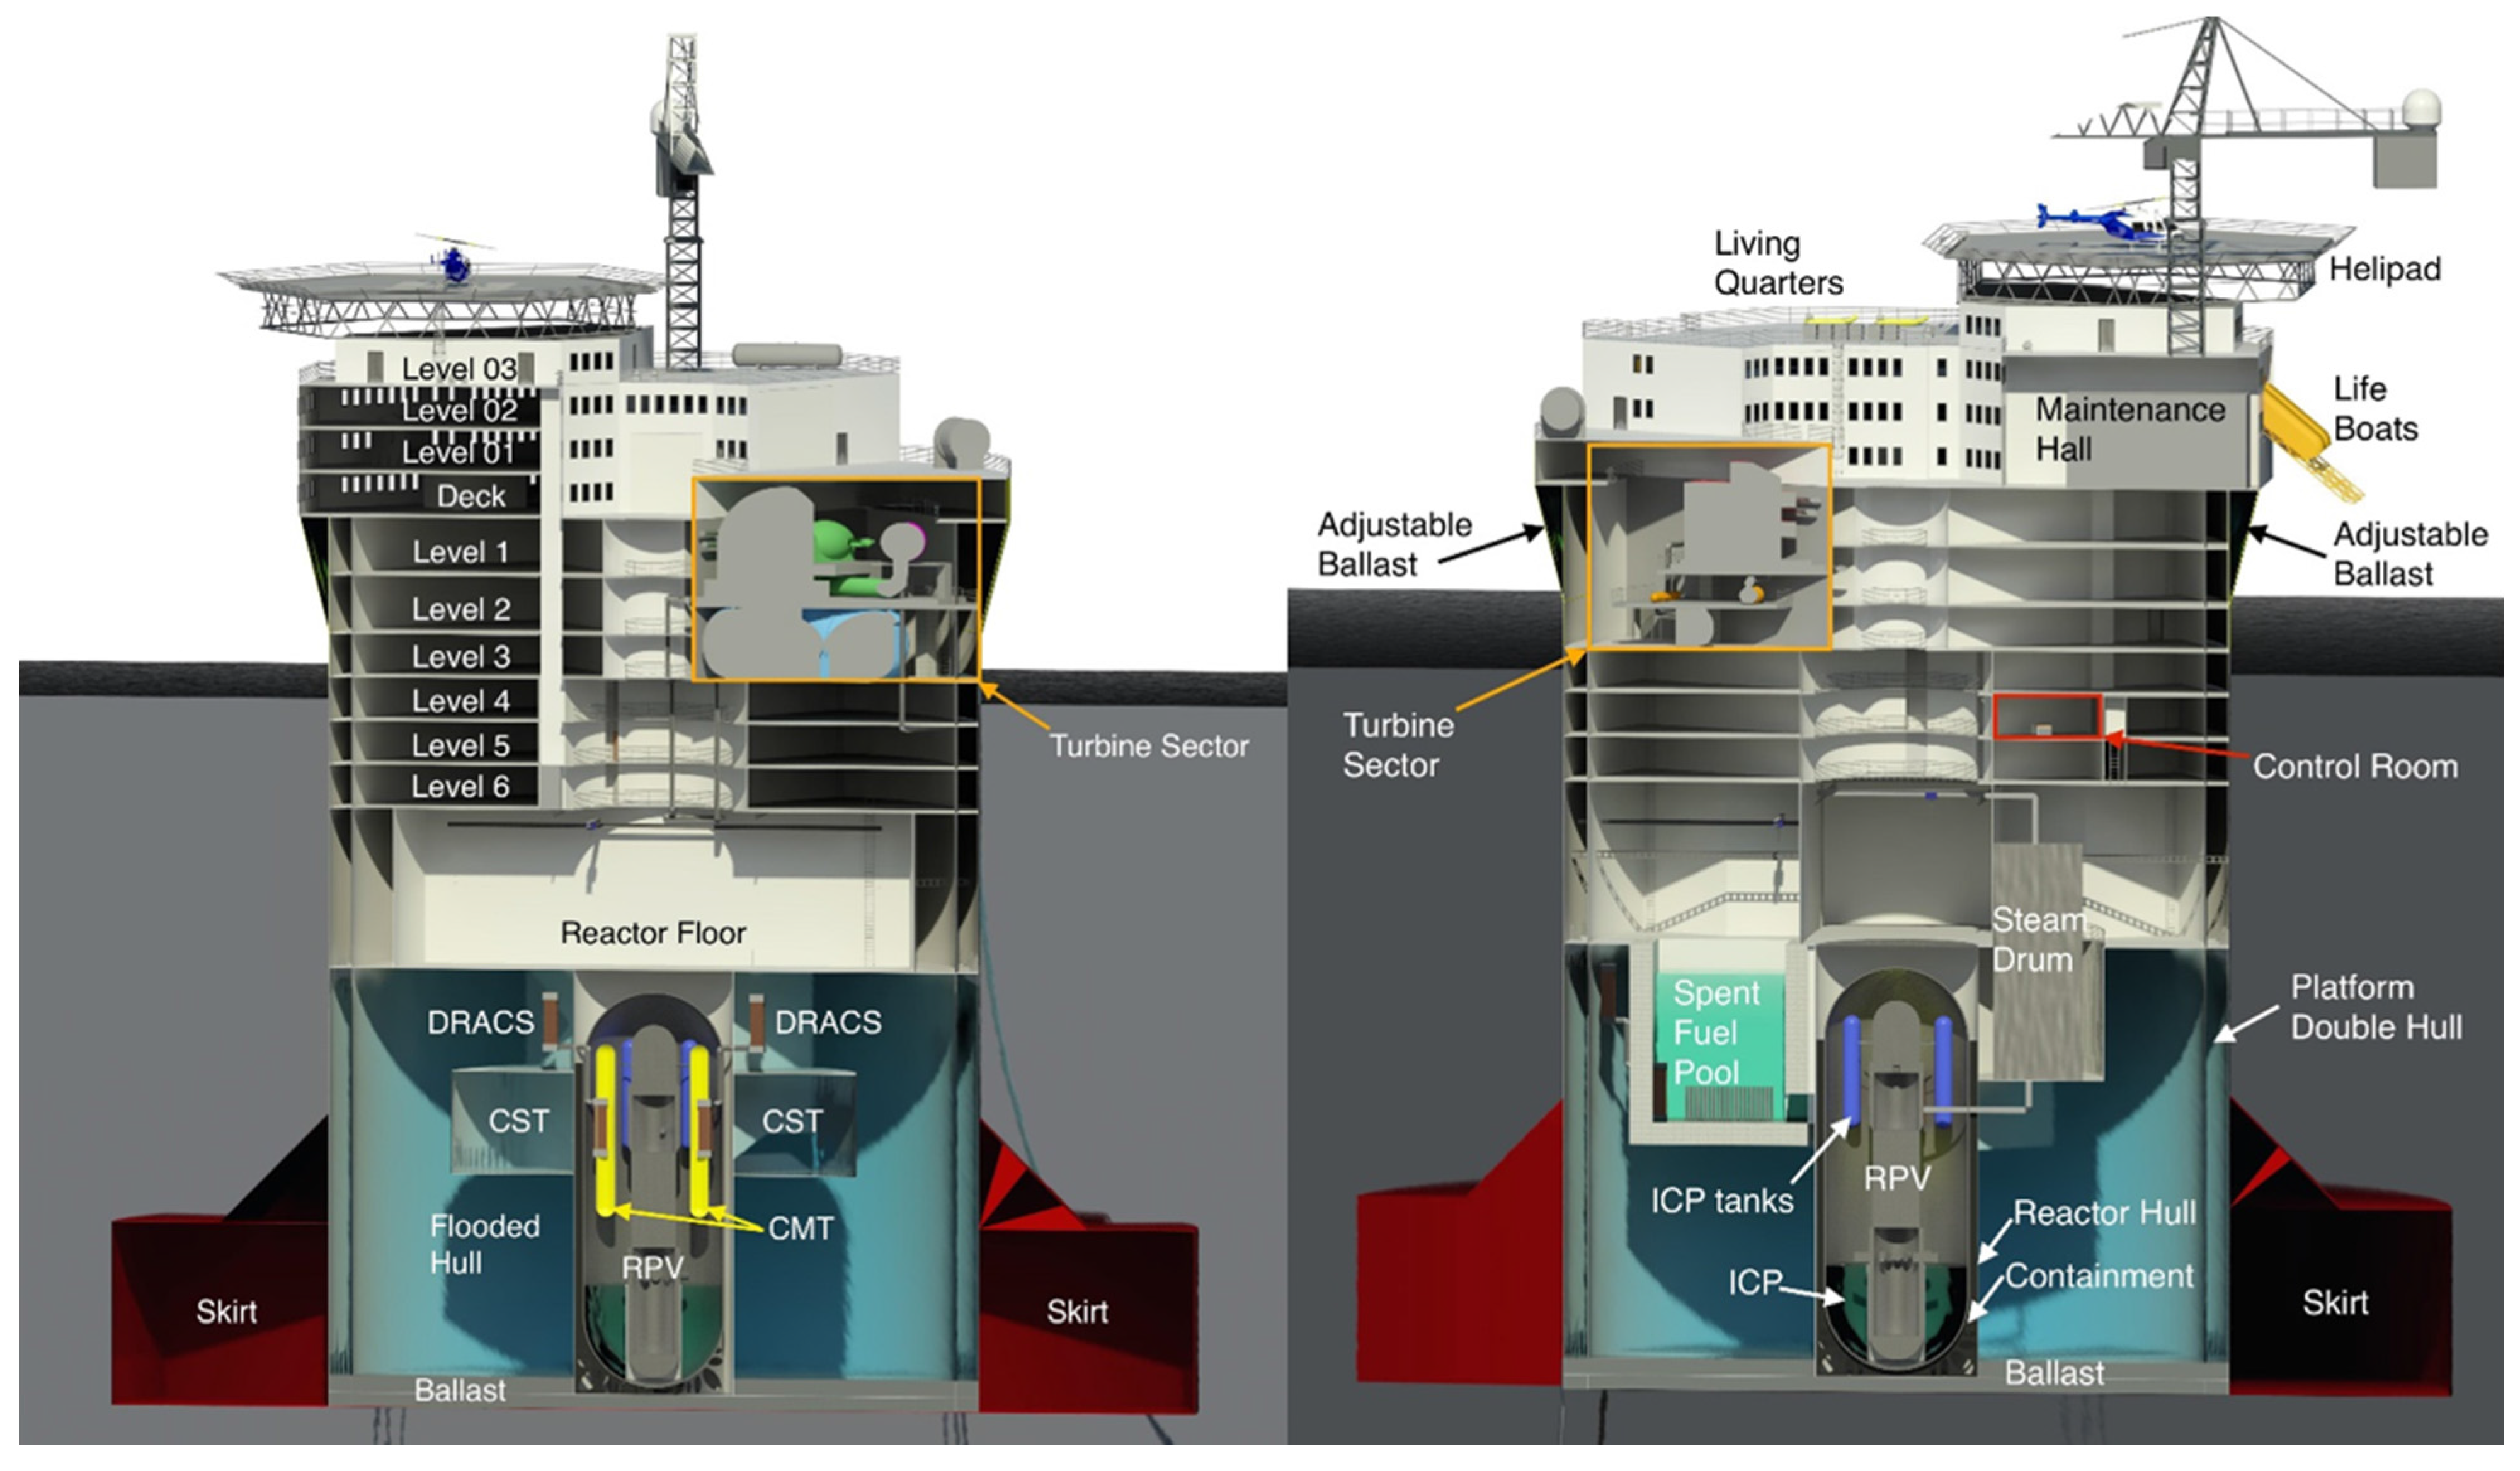 Ship Nuclear Power Plant Diagram Electrical Wiring Diagrams Energies Free Full Text Recent Advances In Ocean Inside A Reactor